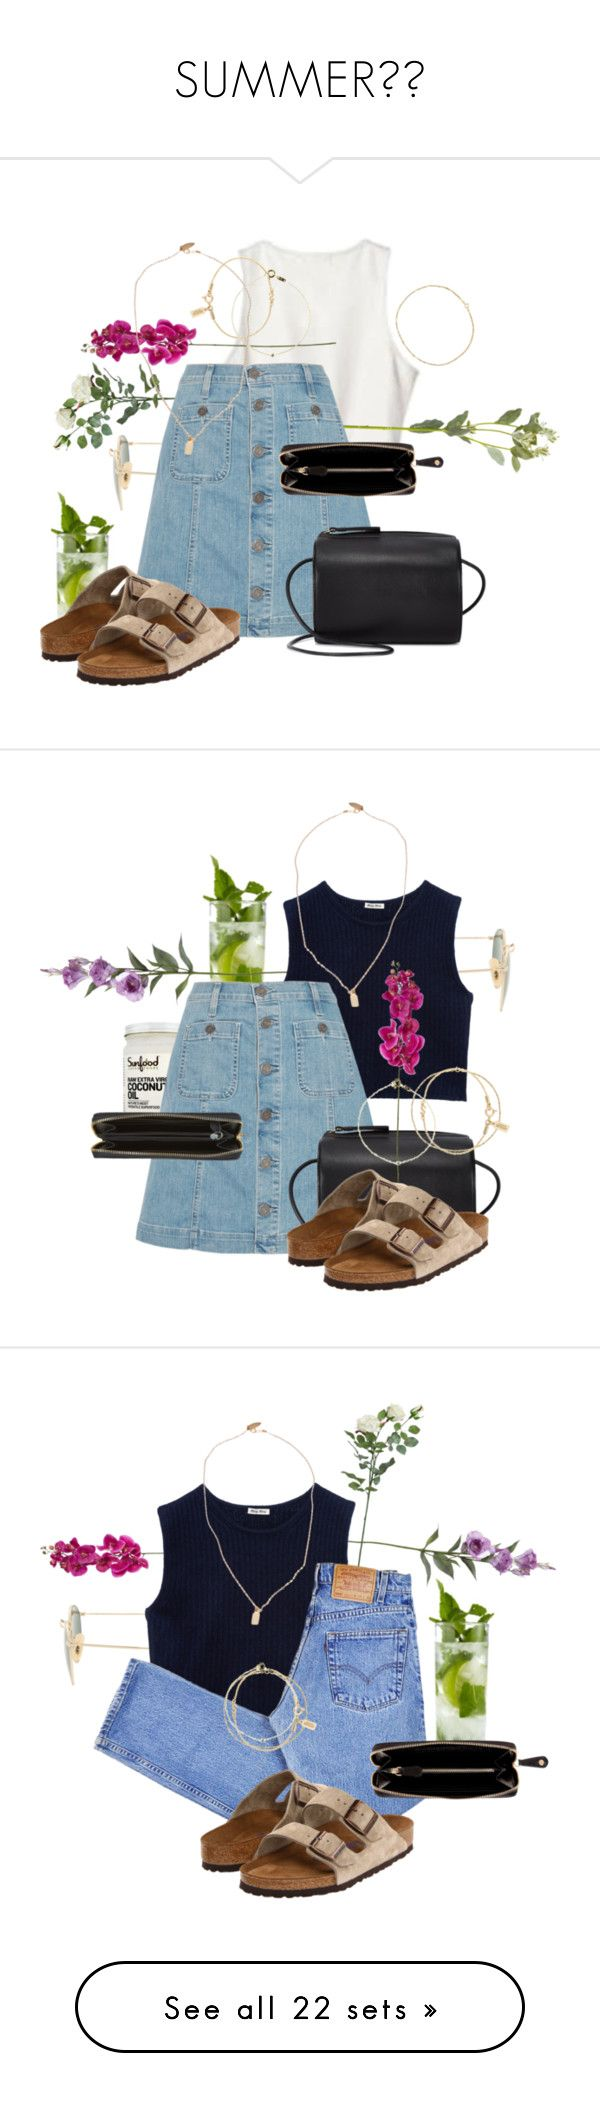 """""""SUMMER☀️"""" by shanika-w ❤ liked on Polyvore featuring Ray-Ban, OKA, Joie, Nomadic, Devon Pavlovits, Kate Spade Saturday, Wouters & Hendrix Gold, Birkenstock, Pori and Building Block"""